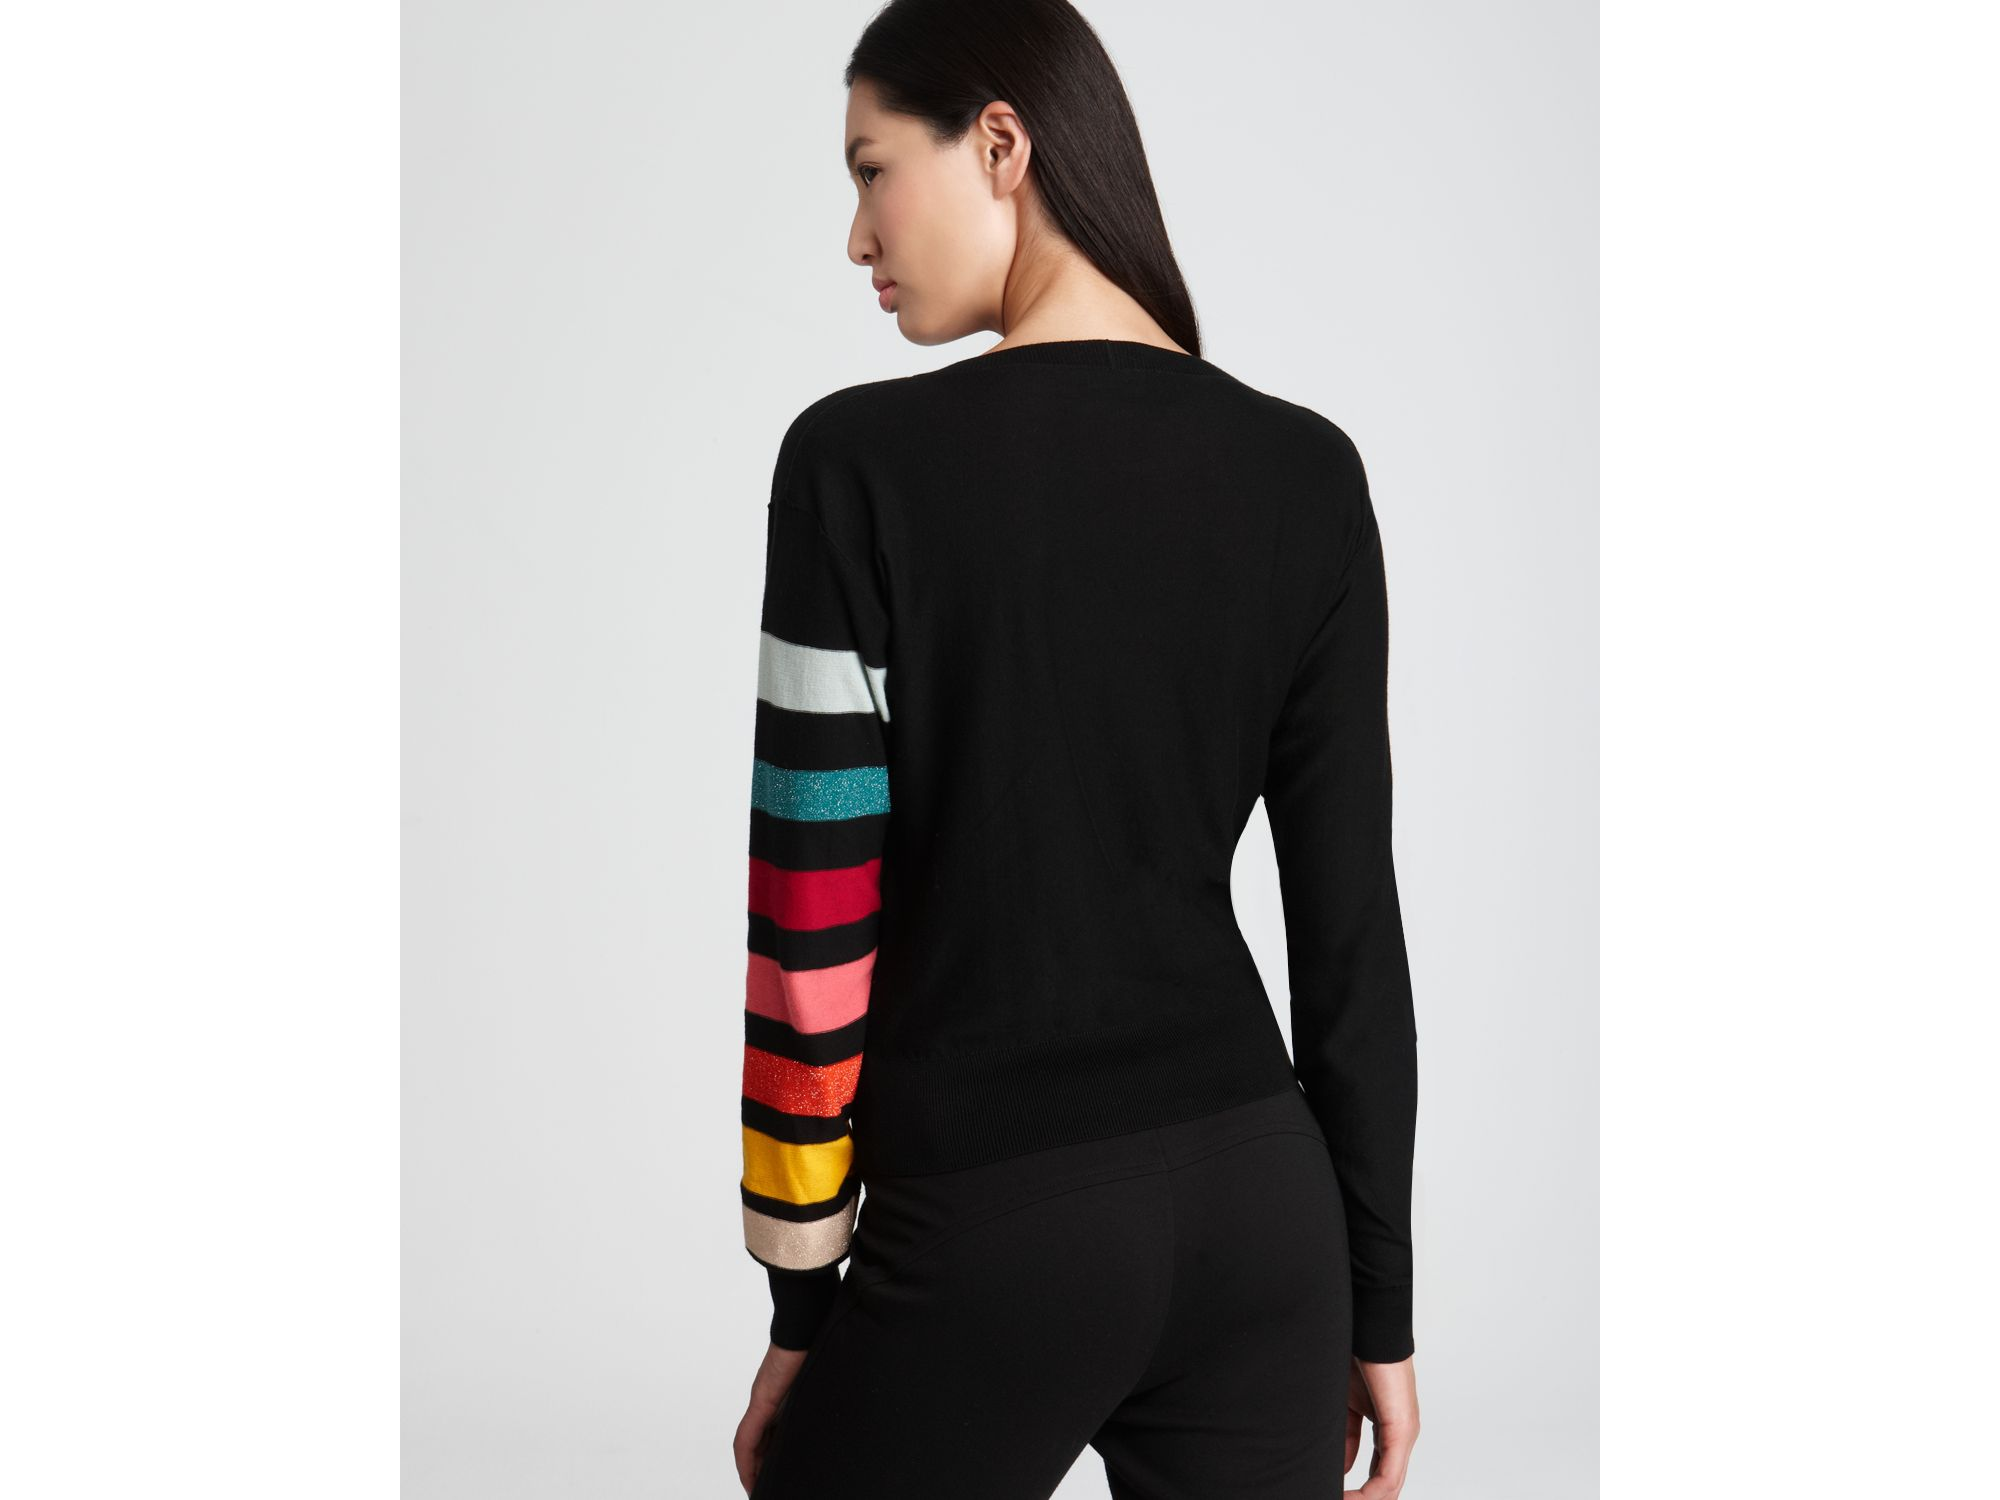 3573289f44 Sonia Rykiel Sonia Rykiel Sweater Rainbow Stripe Sleeve in Black - Lyst